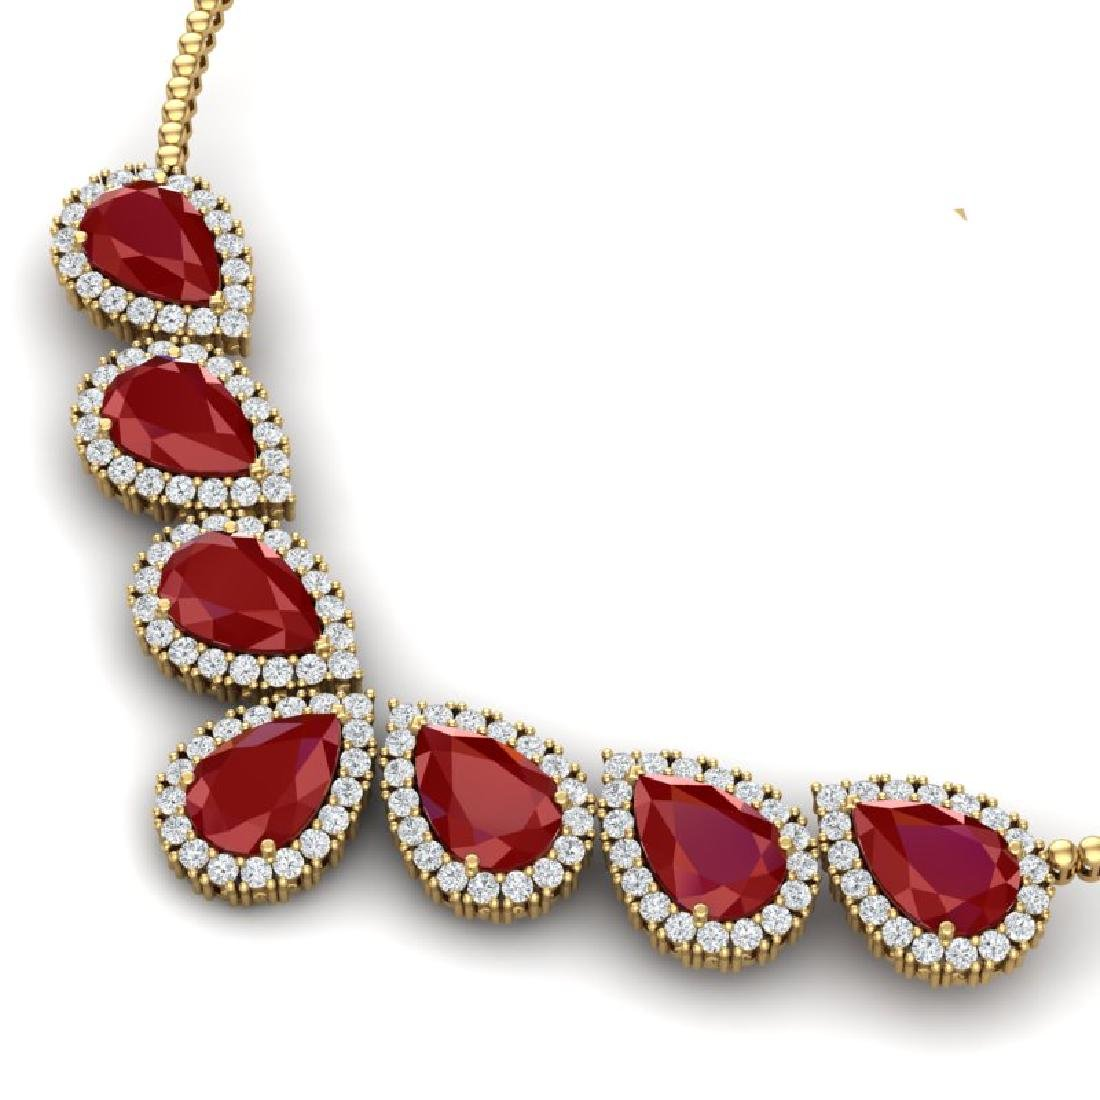 34.72 CTW Royalty Ruby & VS Diamond Necklace 18K Yellow - 2